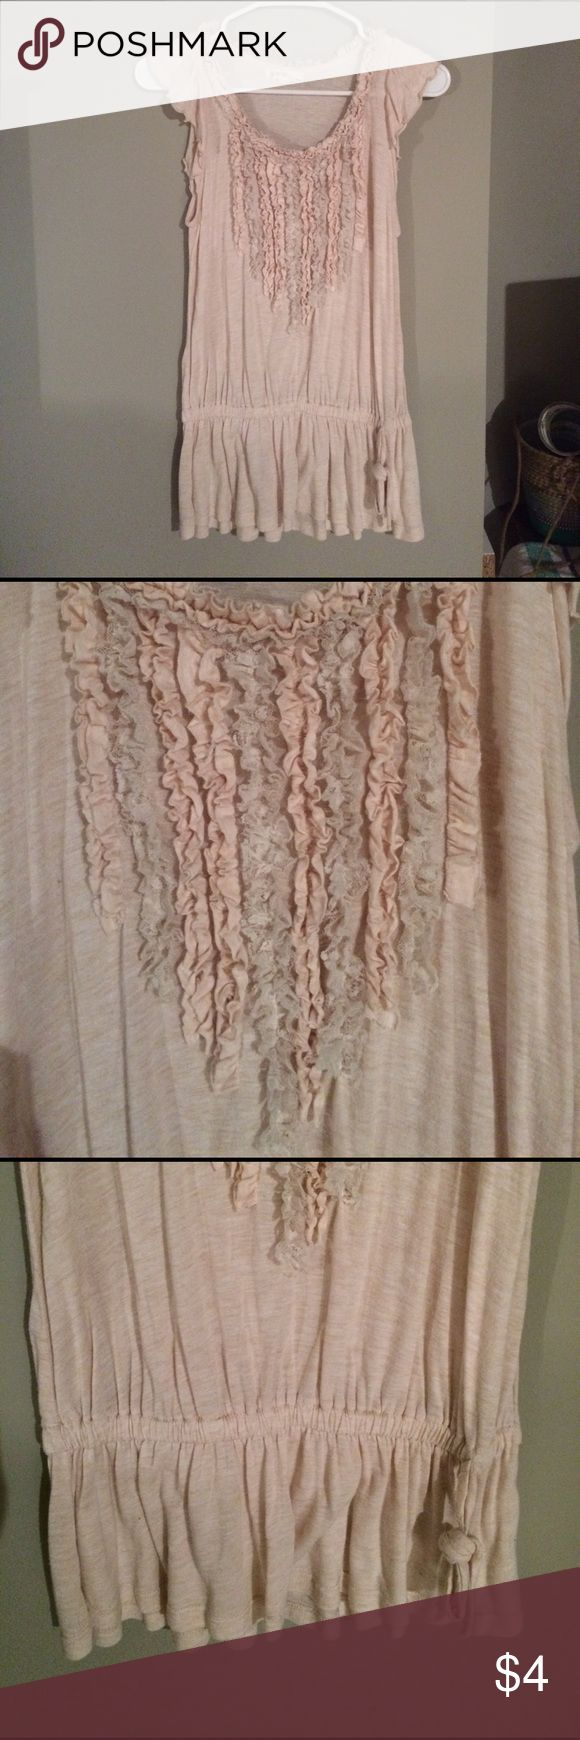 Ruffled Cream Short Sleeved Top Cream with light gray in the ruffles. Front has ruffled. Bottom of shirt has elastic. Ruffled collar and delicate looking sleeves. Soft and delicate feeling. Machine and dryer safe. I'd hang dry just in case because material is thin. Tops Blouses